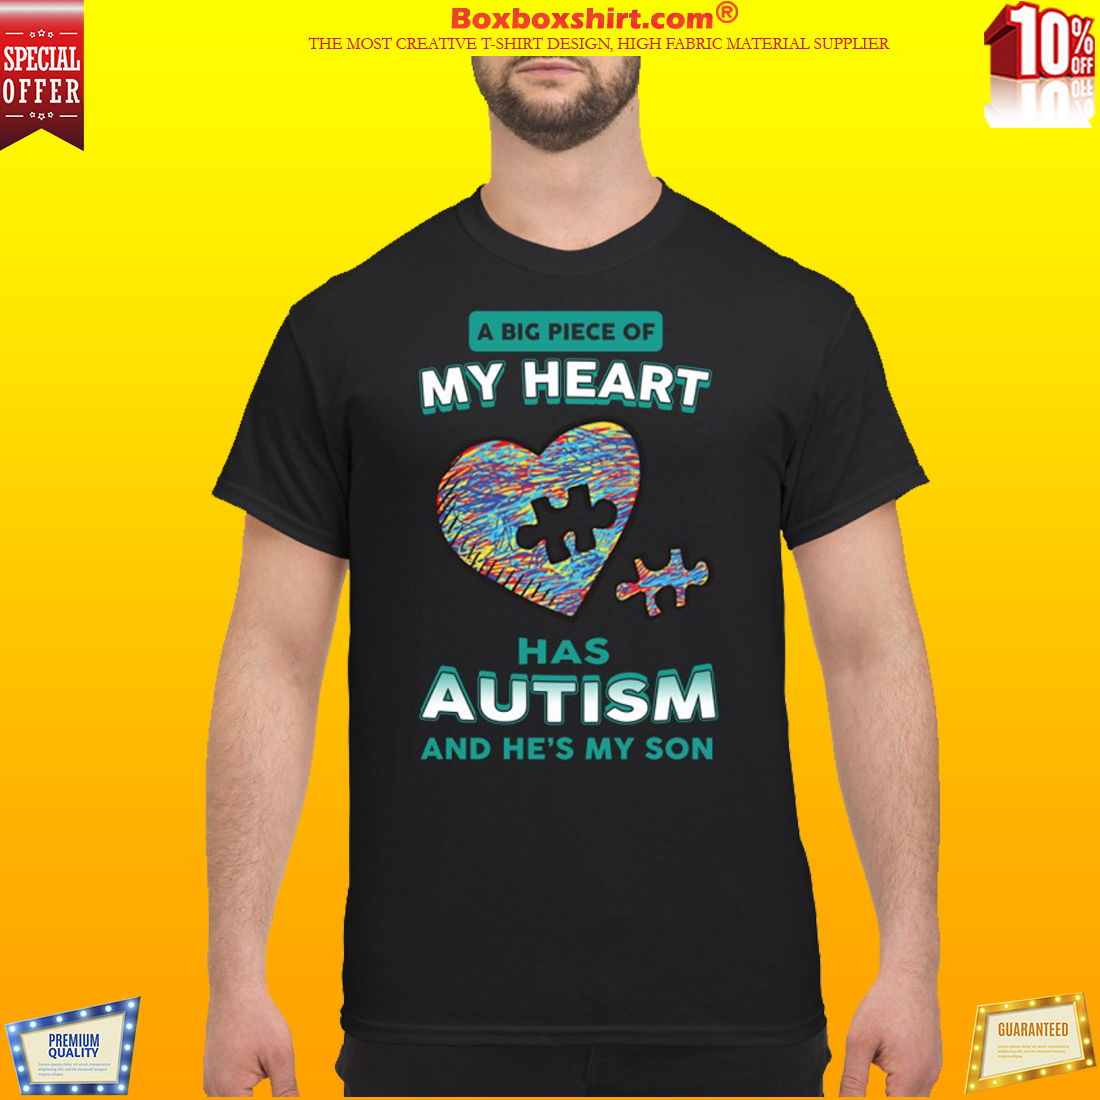 A big piece of my heart has autism he's my son classic shirt